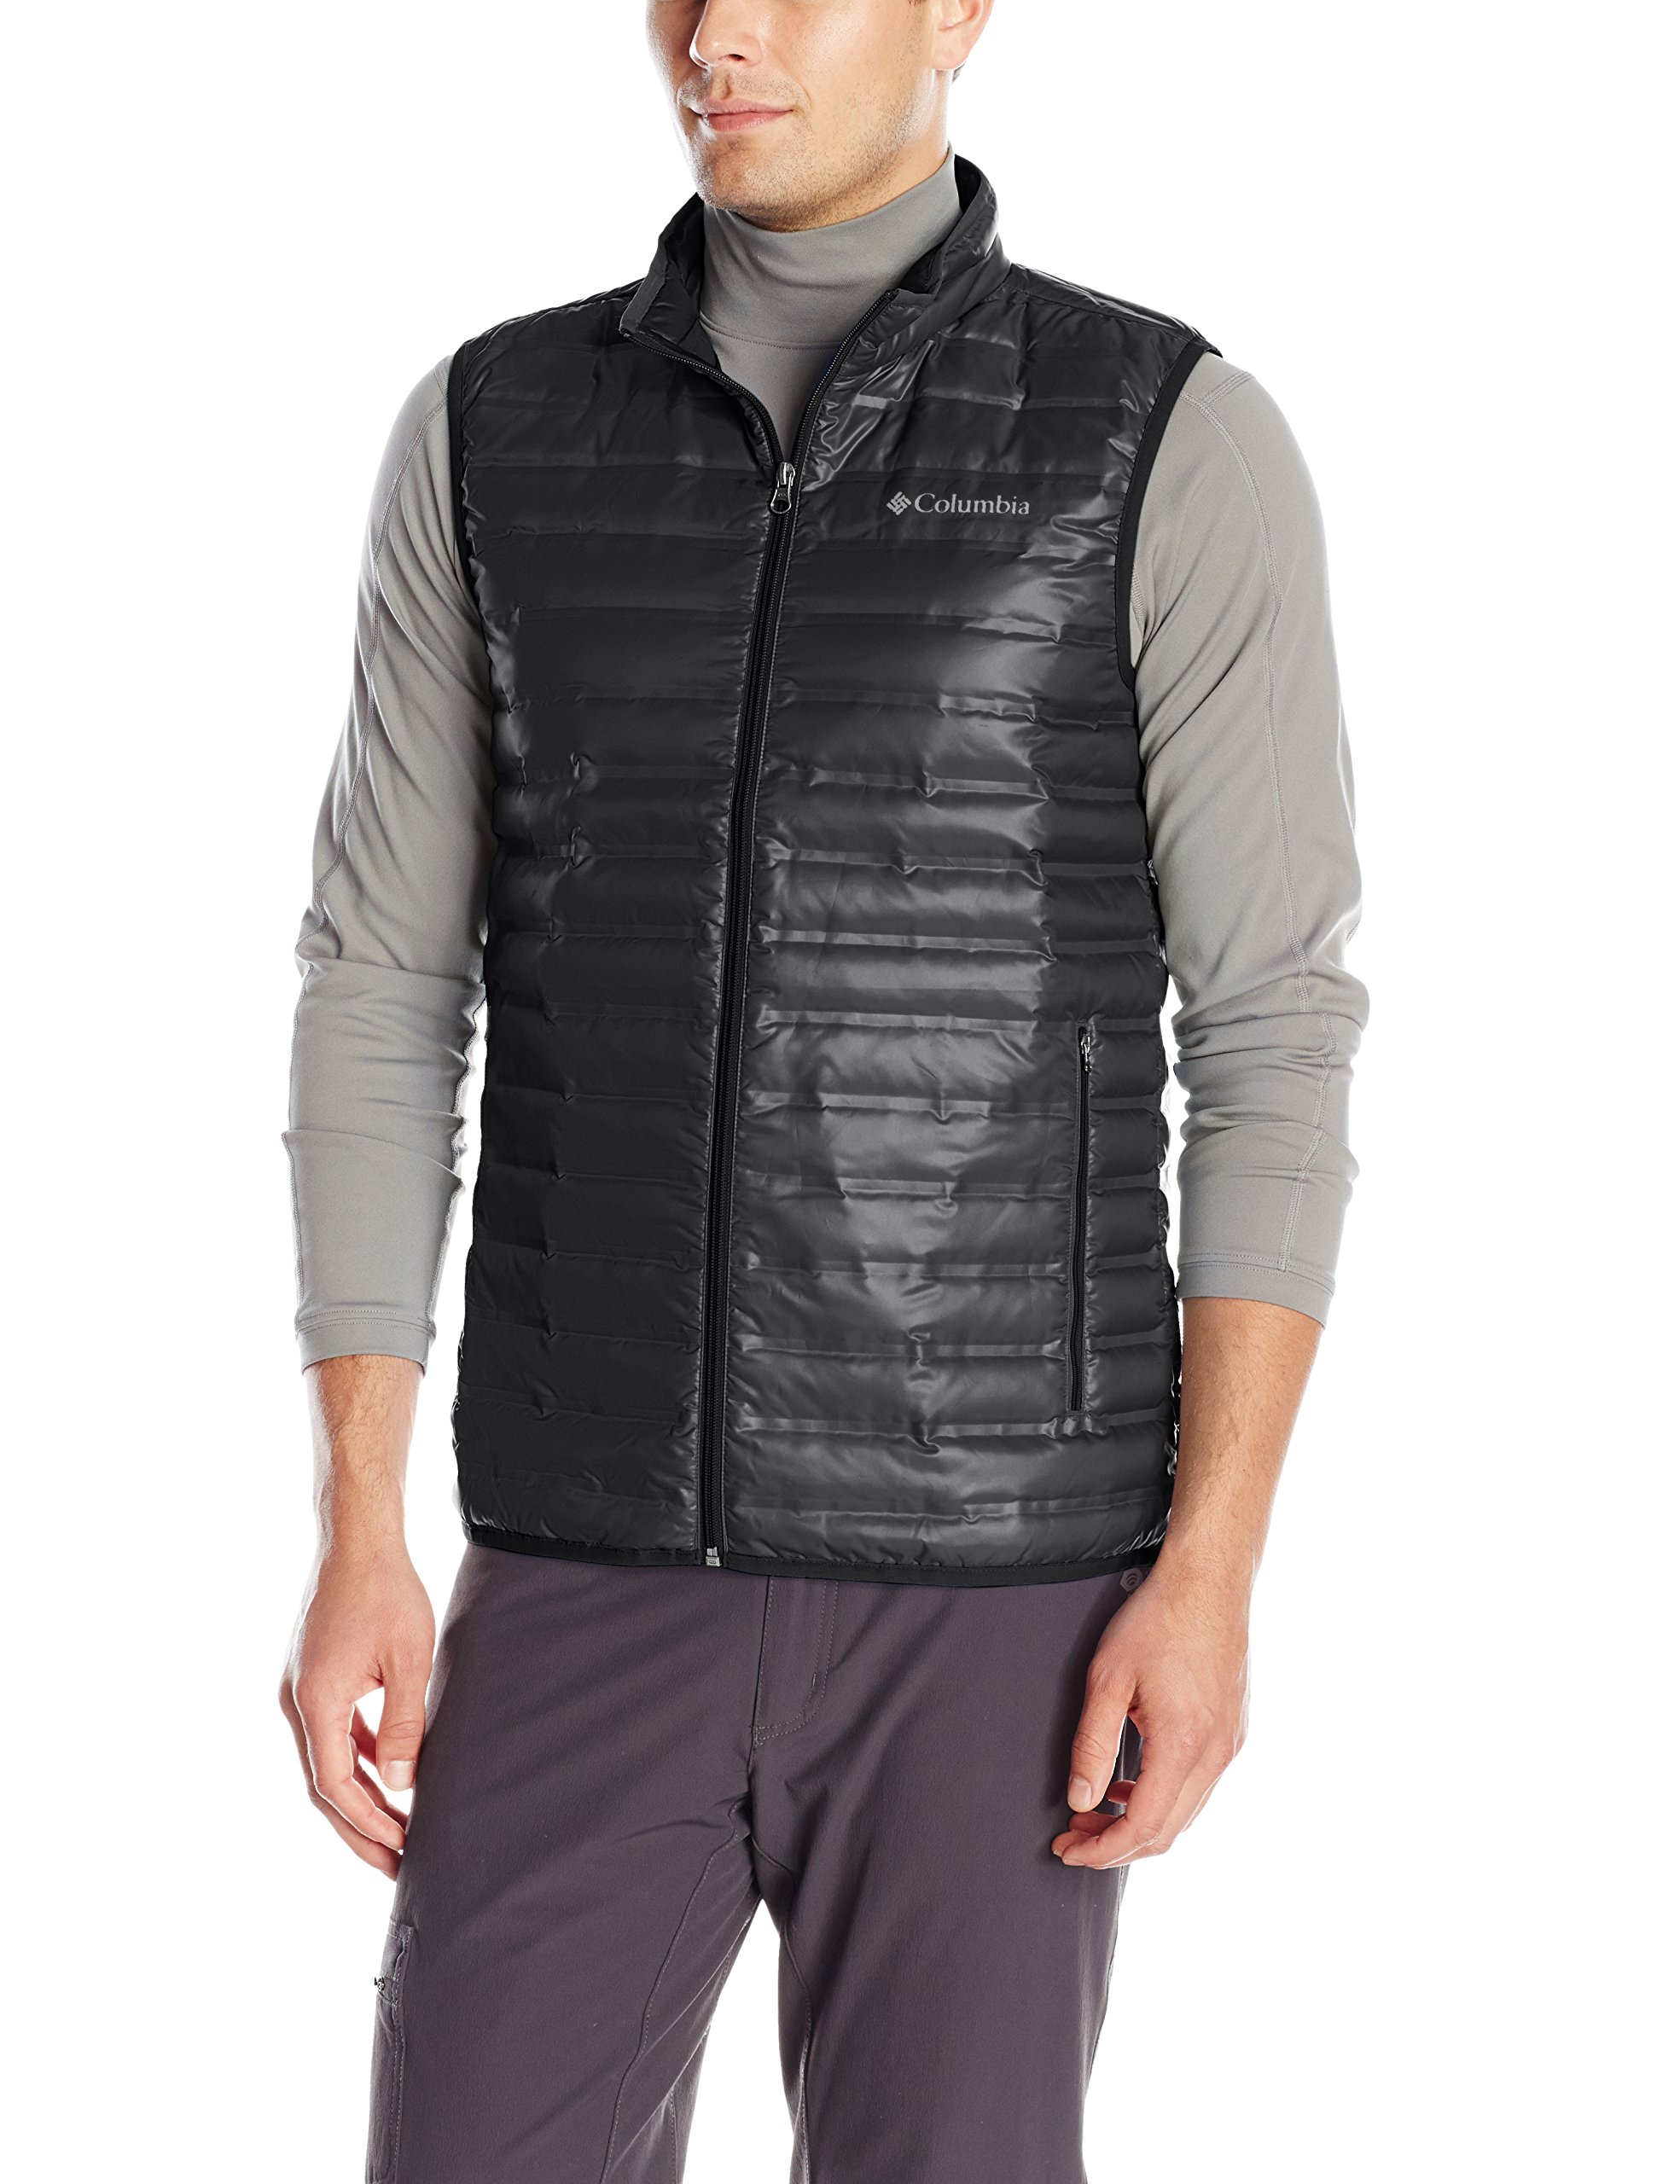 Columbia Sportswear Men's Flash Forward Down Vest, Black, X-Large by Columbia